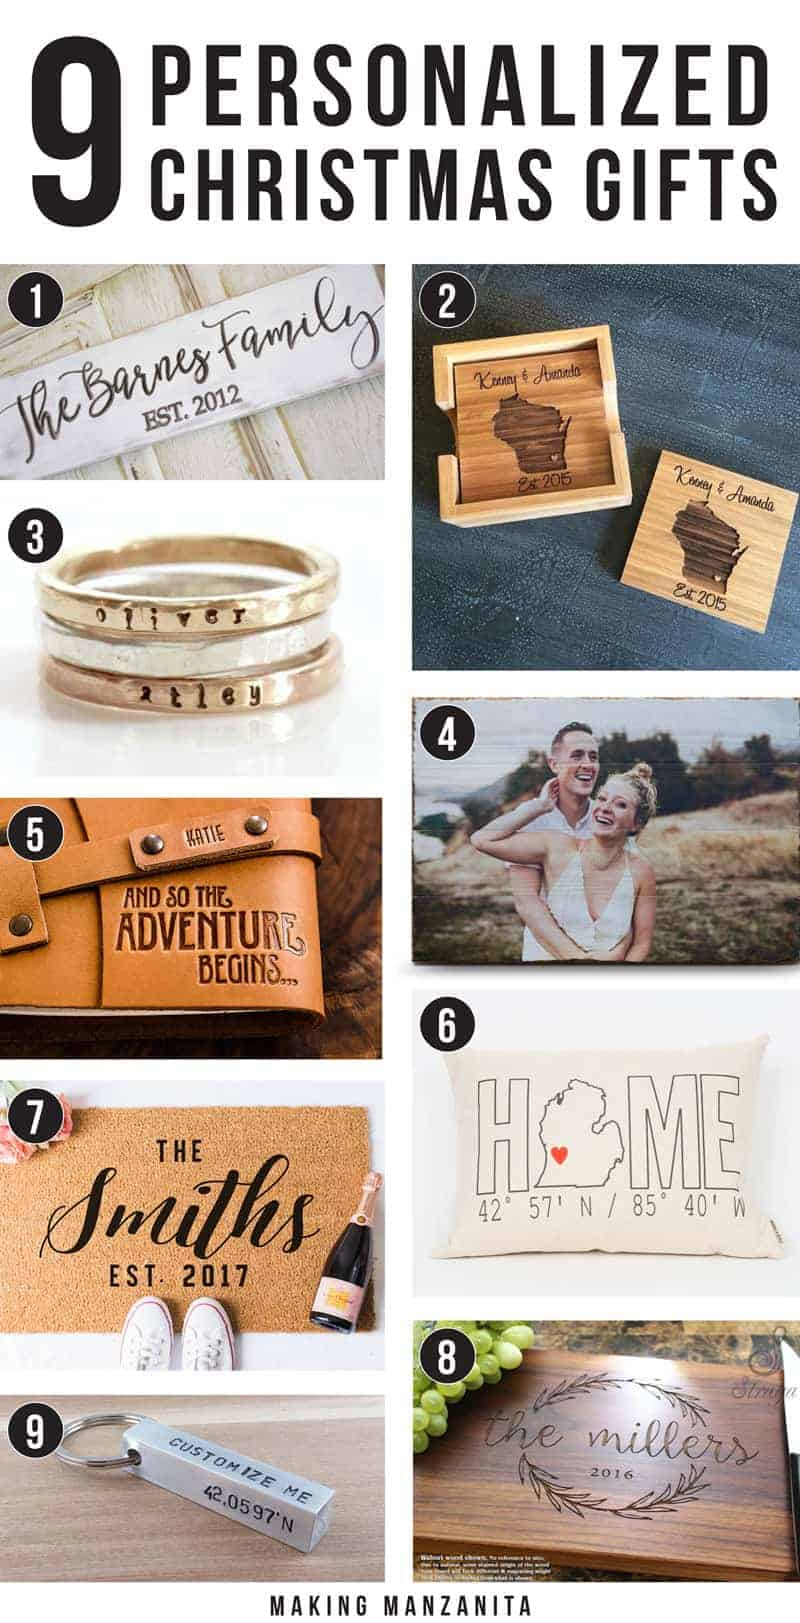 9 Awesome Personalized Christmas Gifts - Making Manzanita